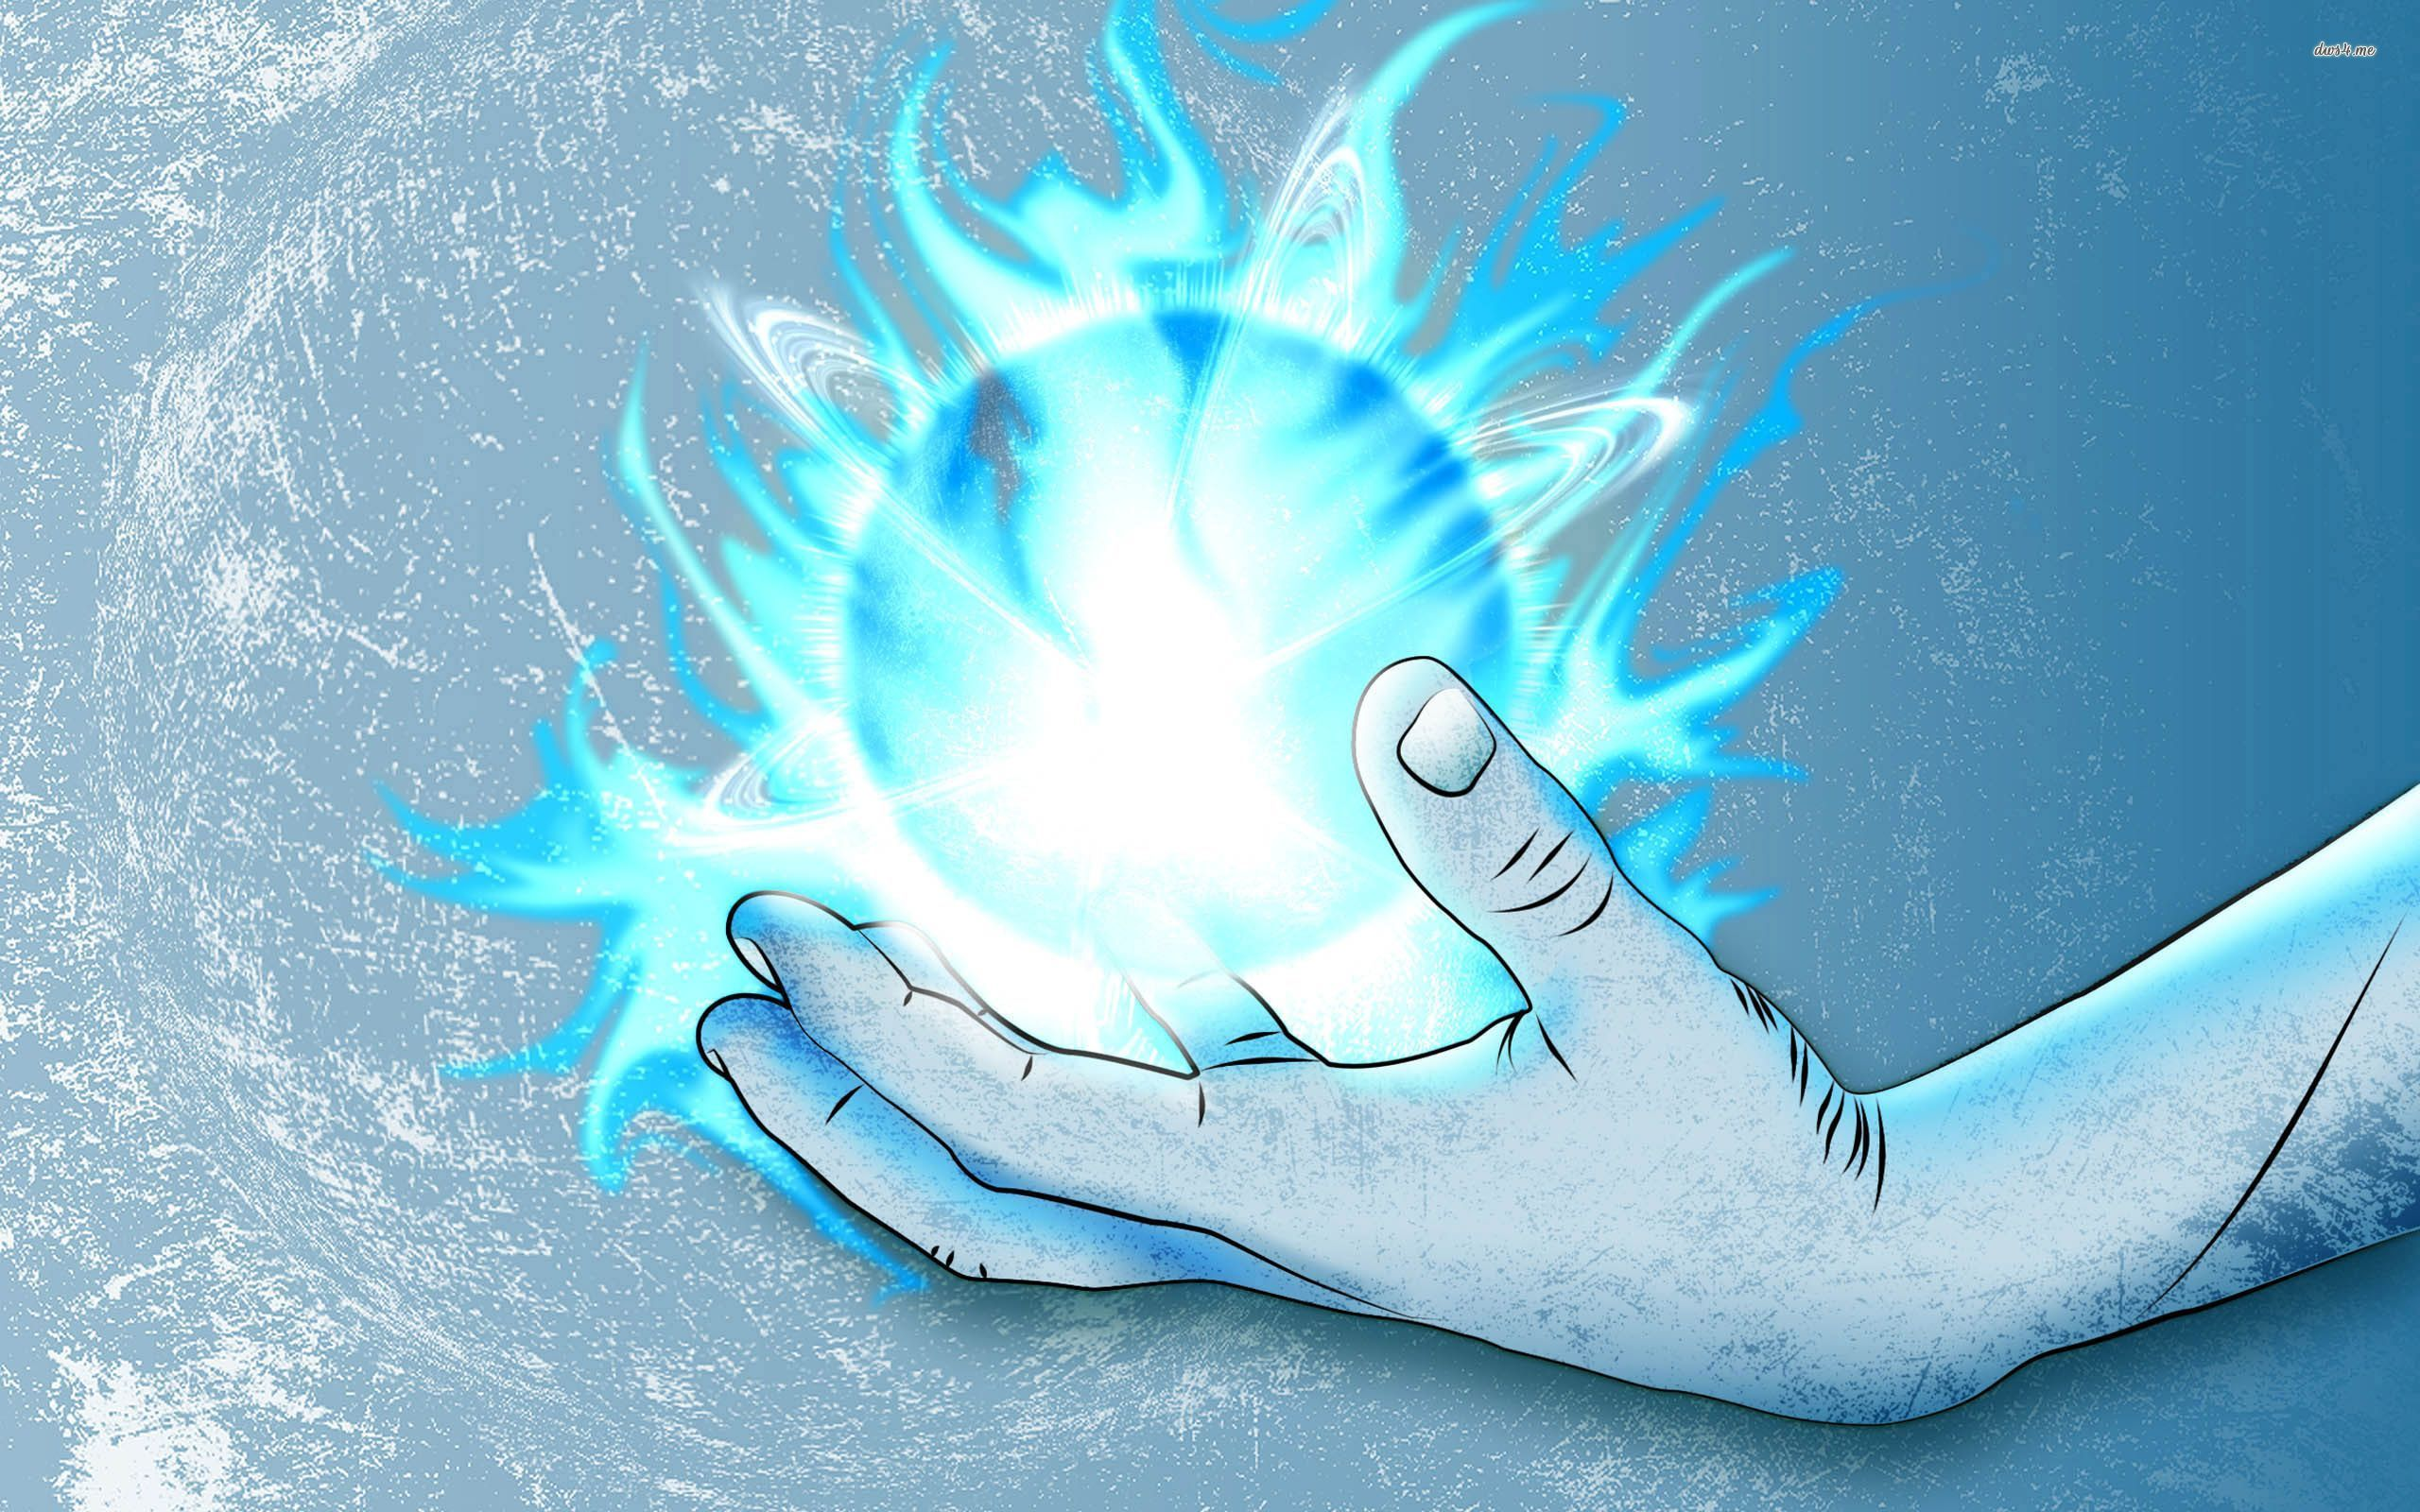 Rasengan   Naruto wallpaper   Anime wallpapers   30372 2560x1600